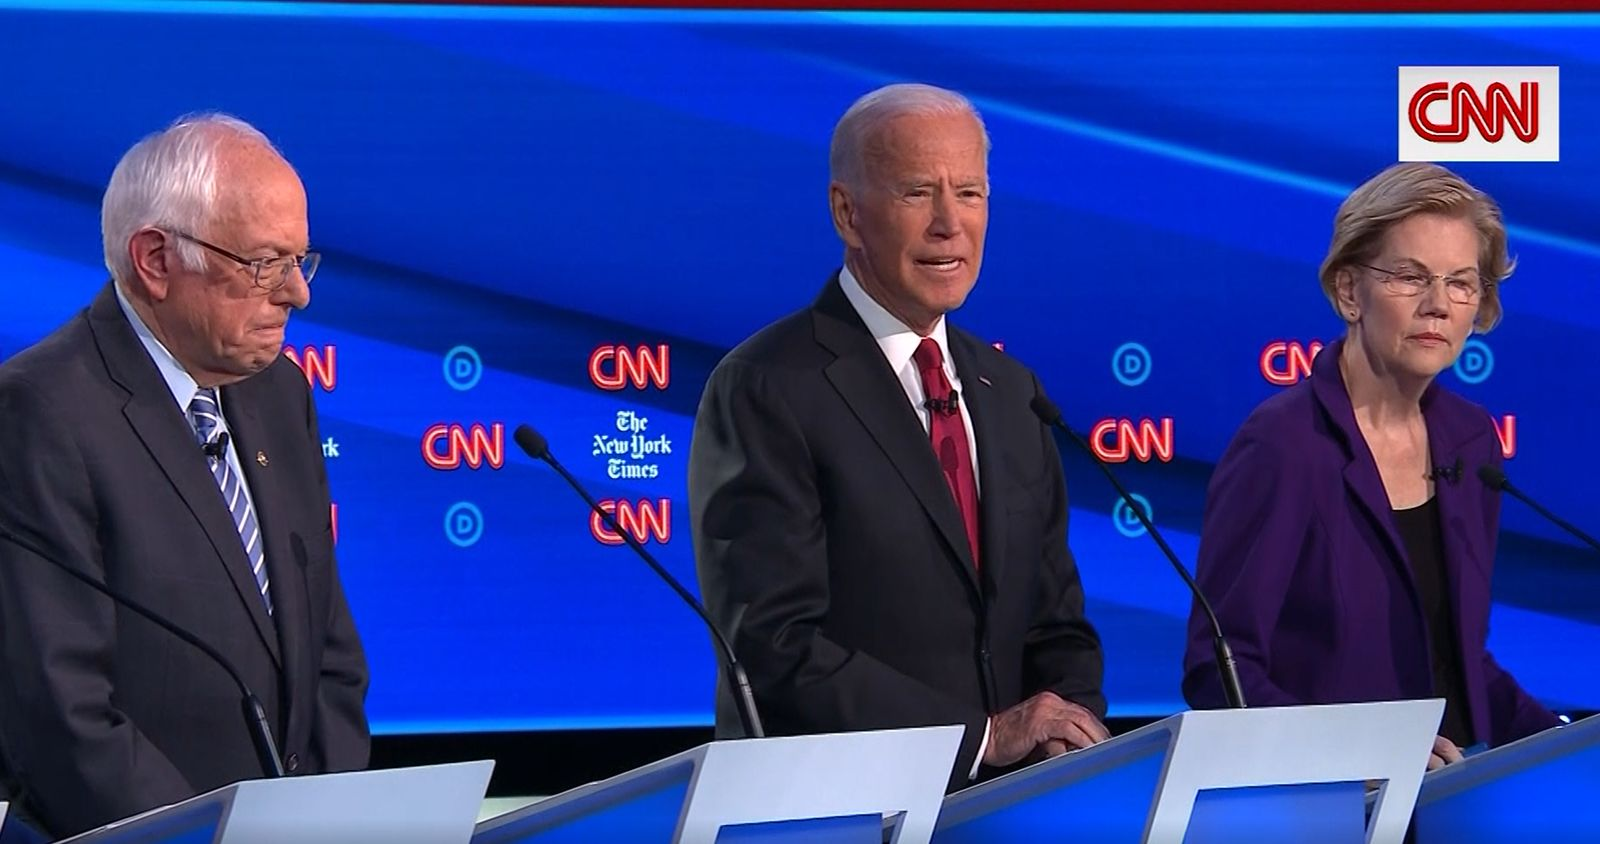 Sen. Elizabeth Warren faced tough questions from moderators and fellow candidates at a 2020 primary debate in Ohio on Oct. 15, 2019. (CNN Newsource)